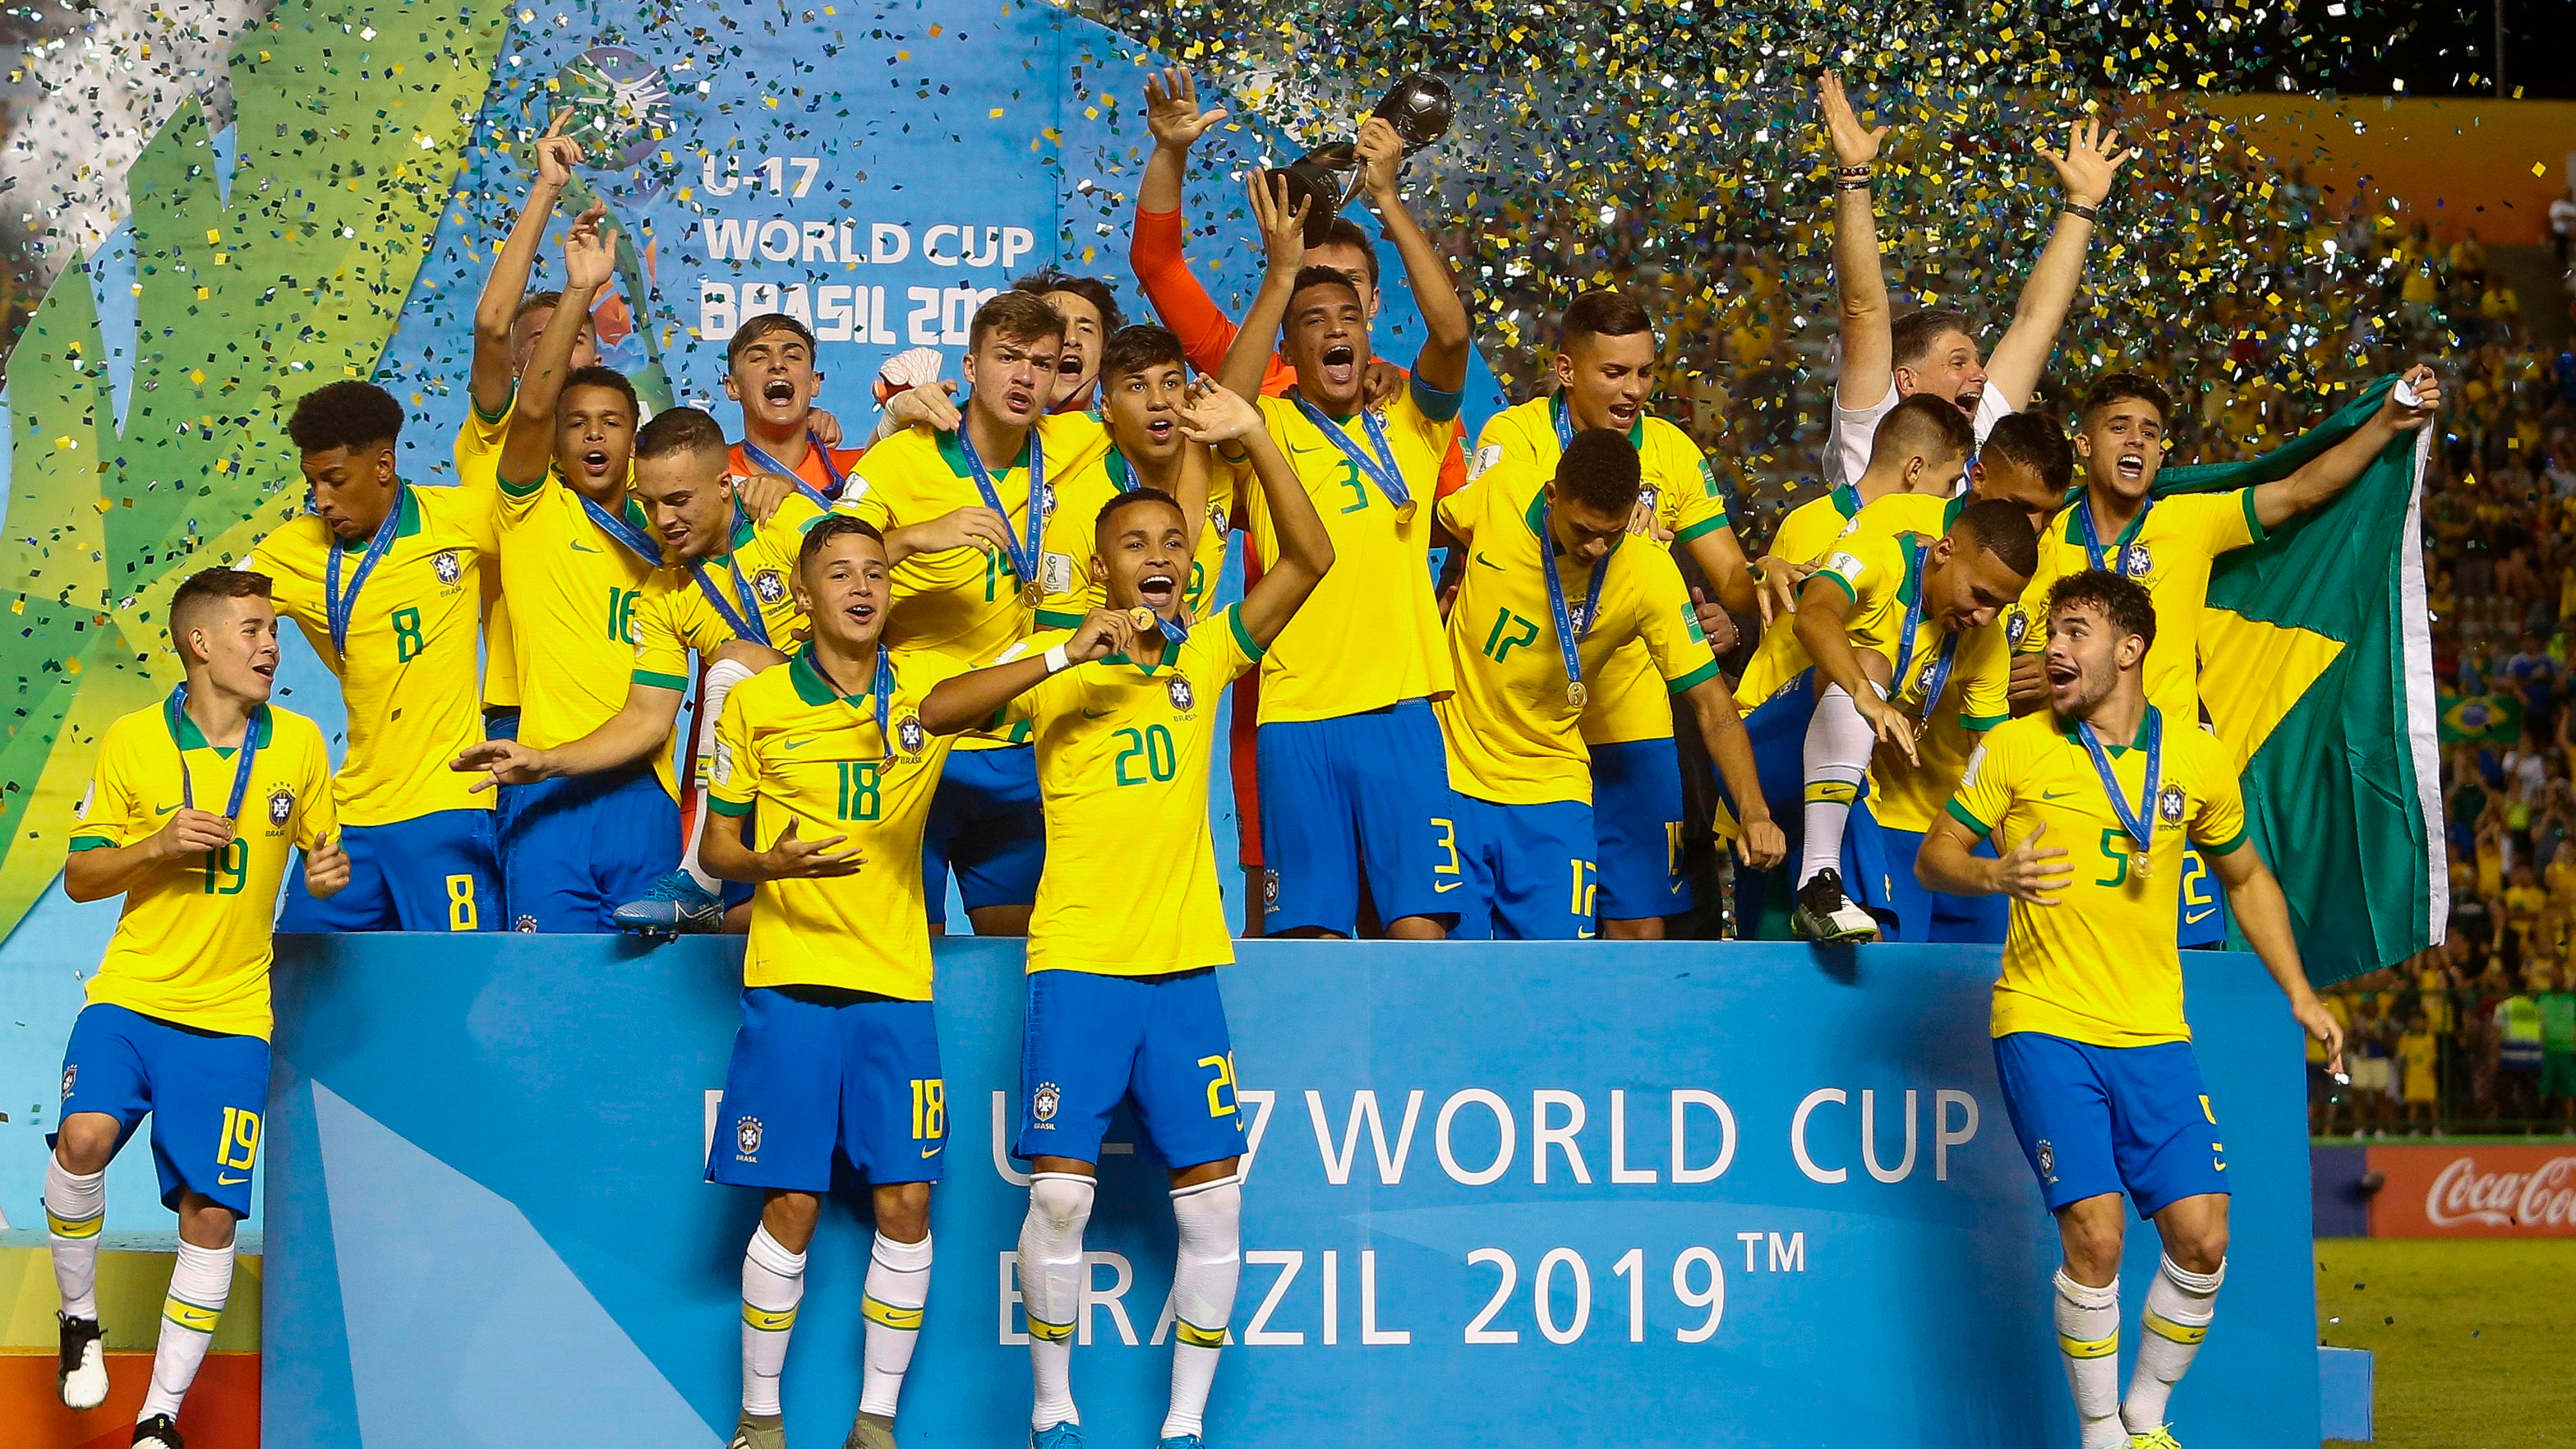 Brazil win U-17 World Cup title with dramatic win over Mexico